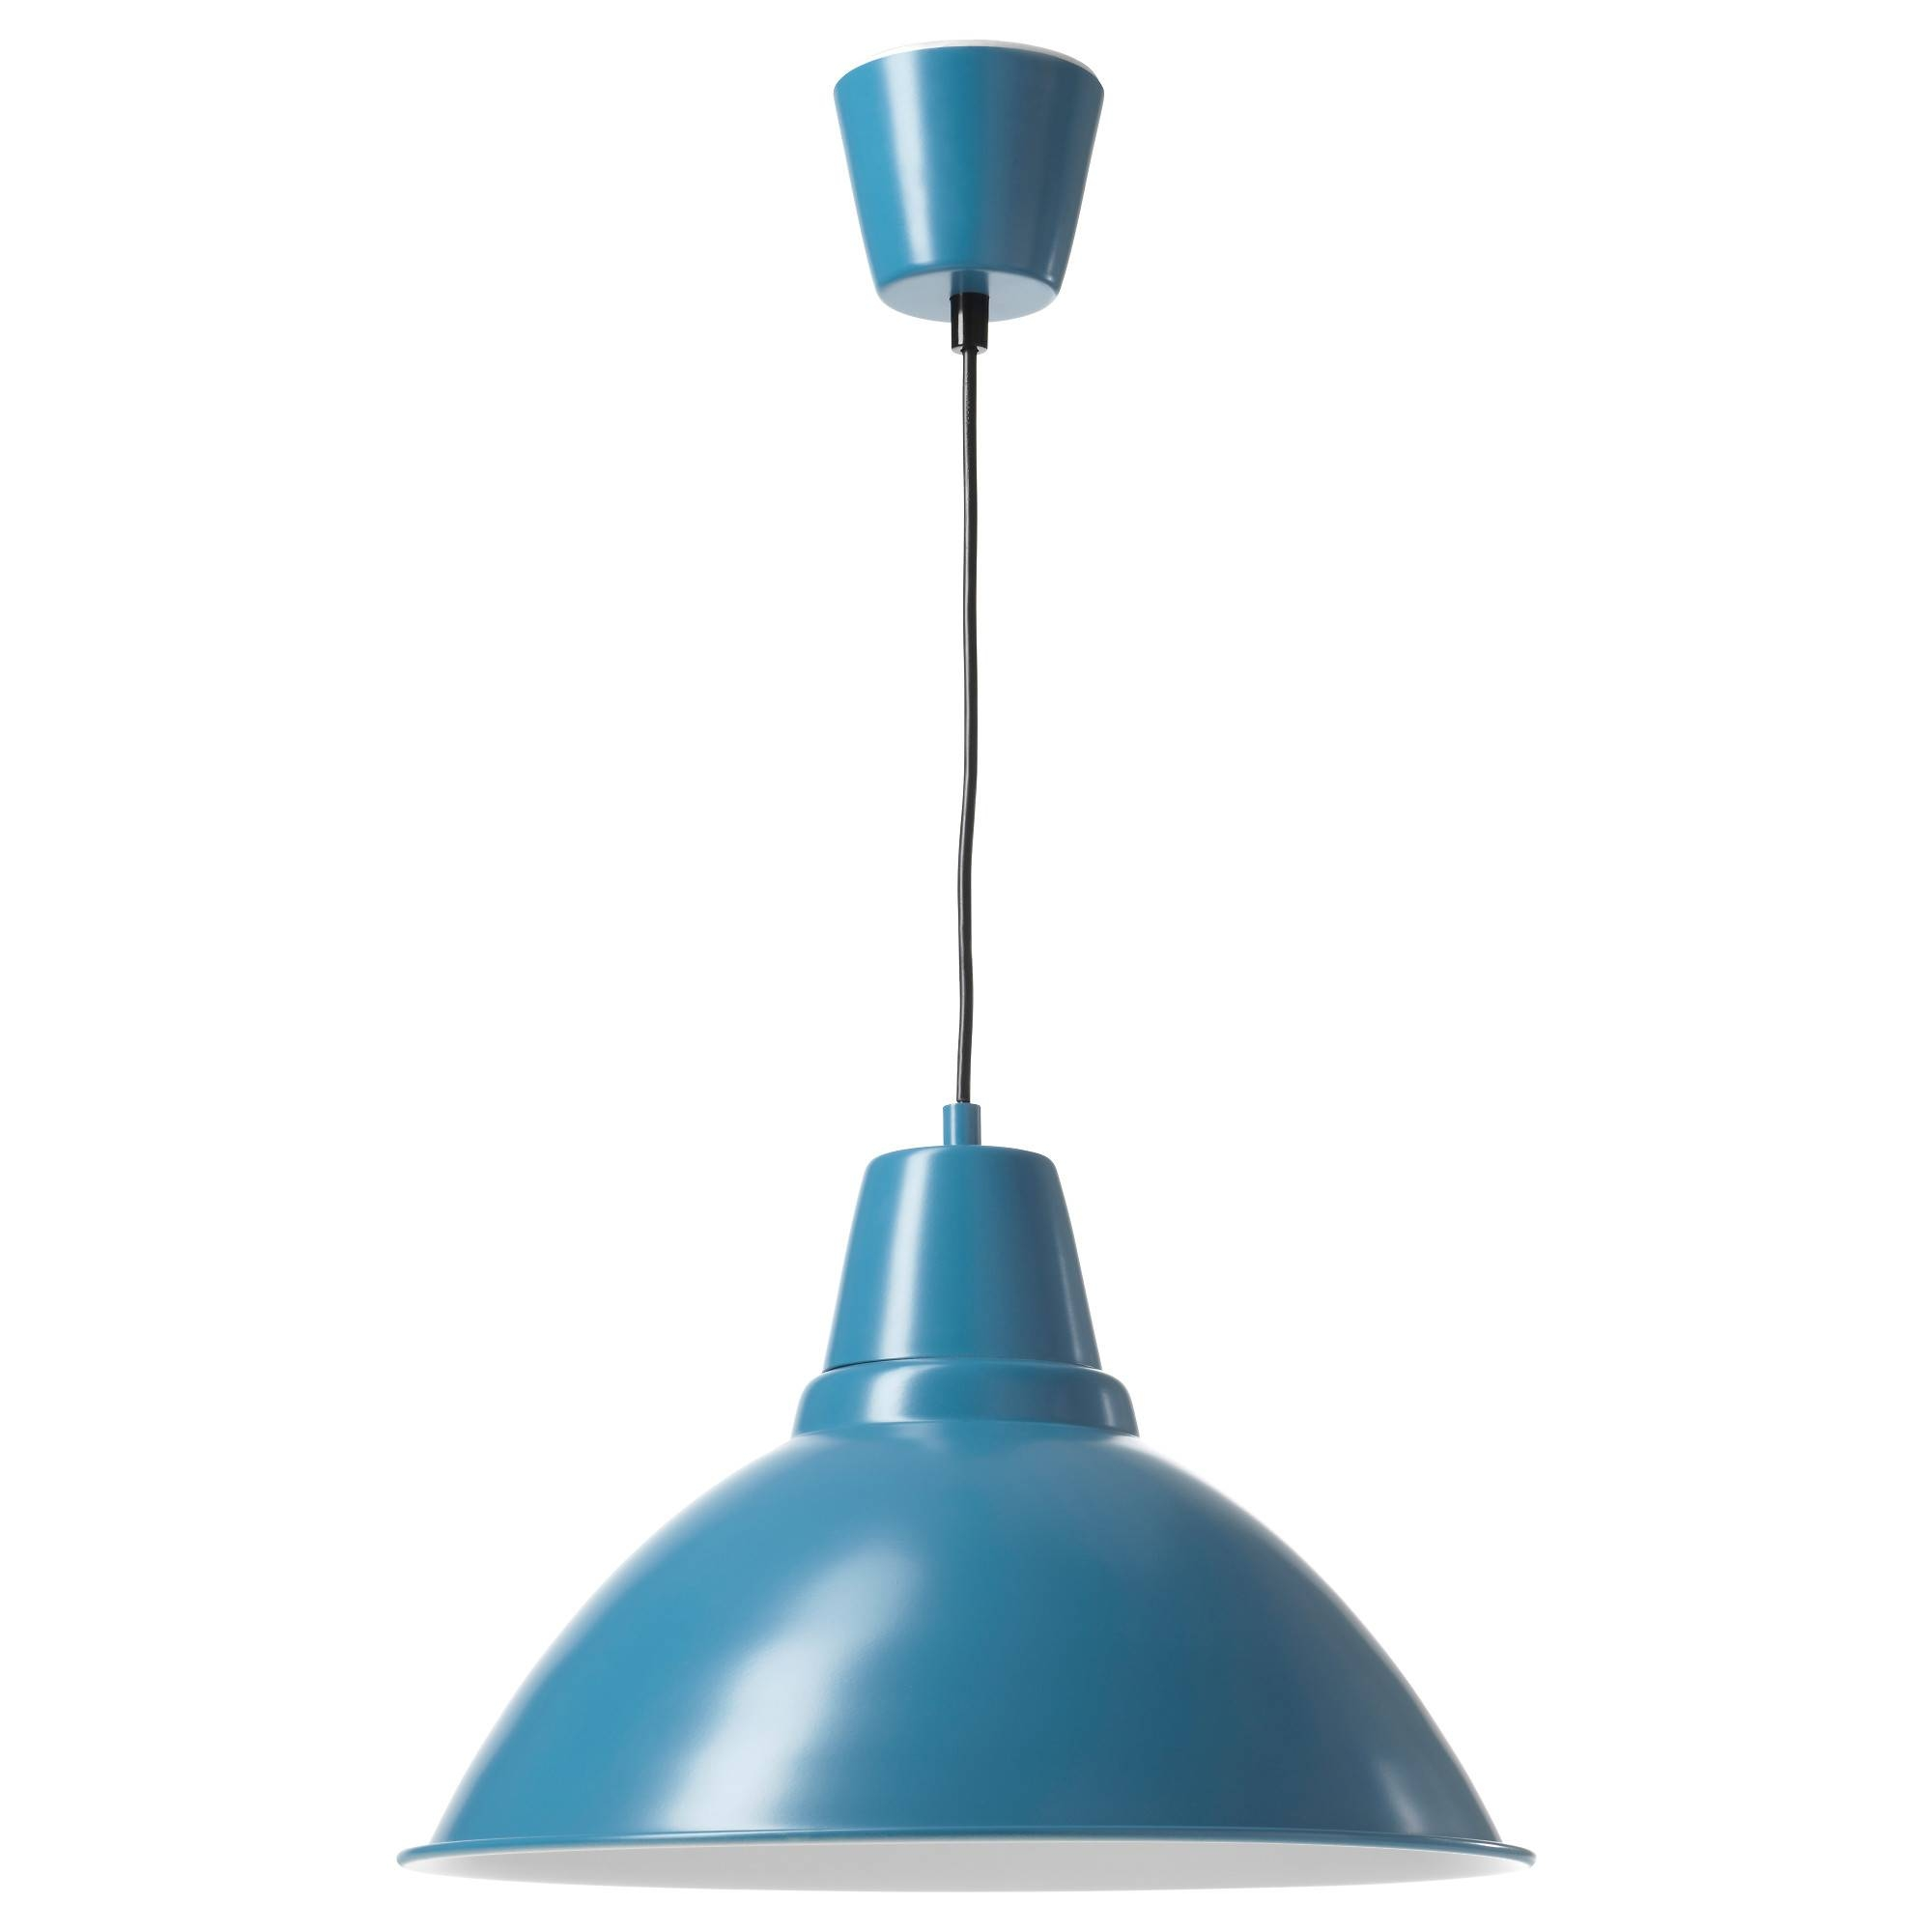 Foto Pendant Lamp Blue 38 Cm - Ikea regarding Blue Pendant Lights (Image 9 of 15)